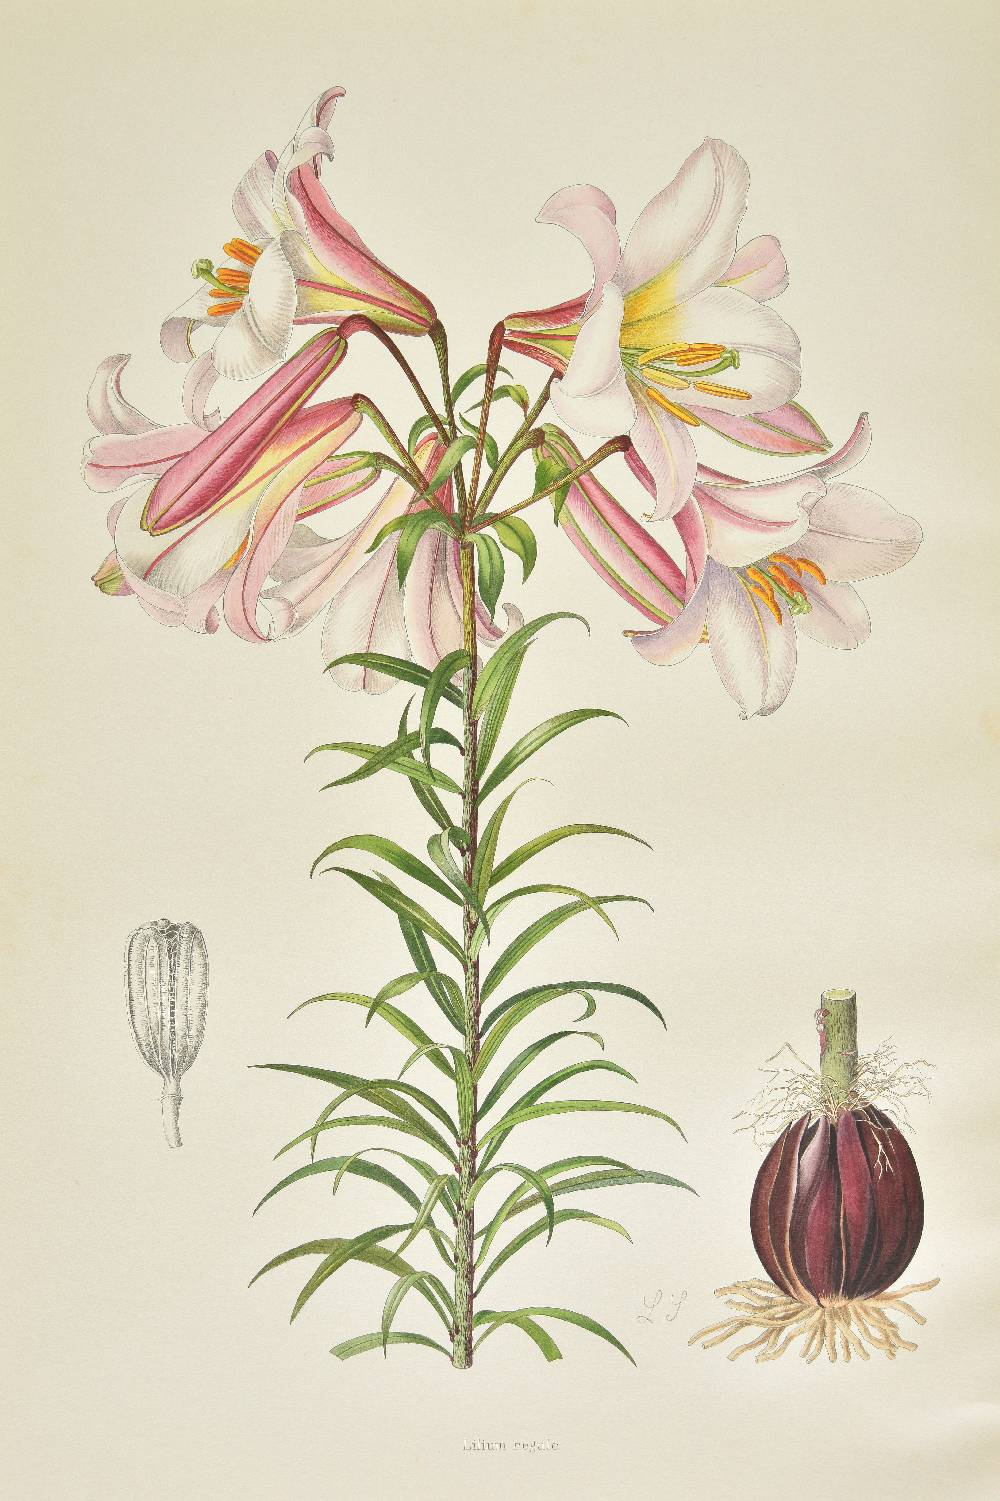 Lot 29 - [Elwes, Henry John]. A Supplement to Elwes' Monograph of the Genus Lilium, by A. Grove (& others),